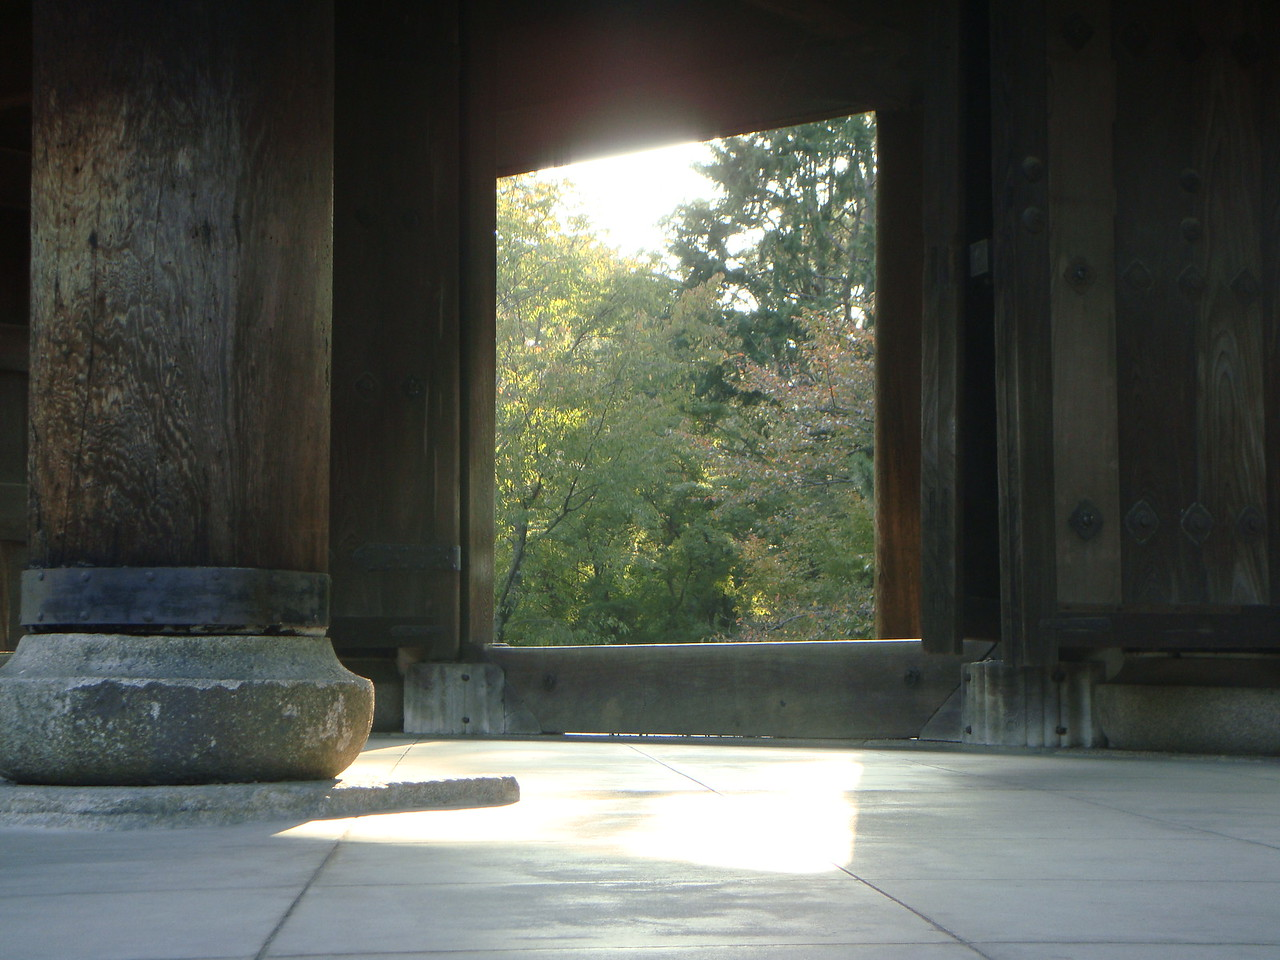 THE GATE TO NANZENJI TEMPLE IN KYOTO